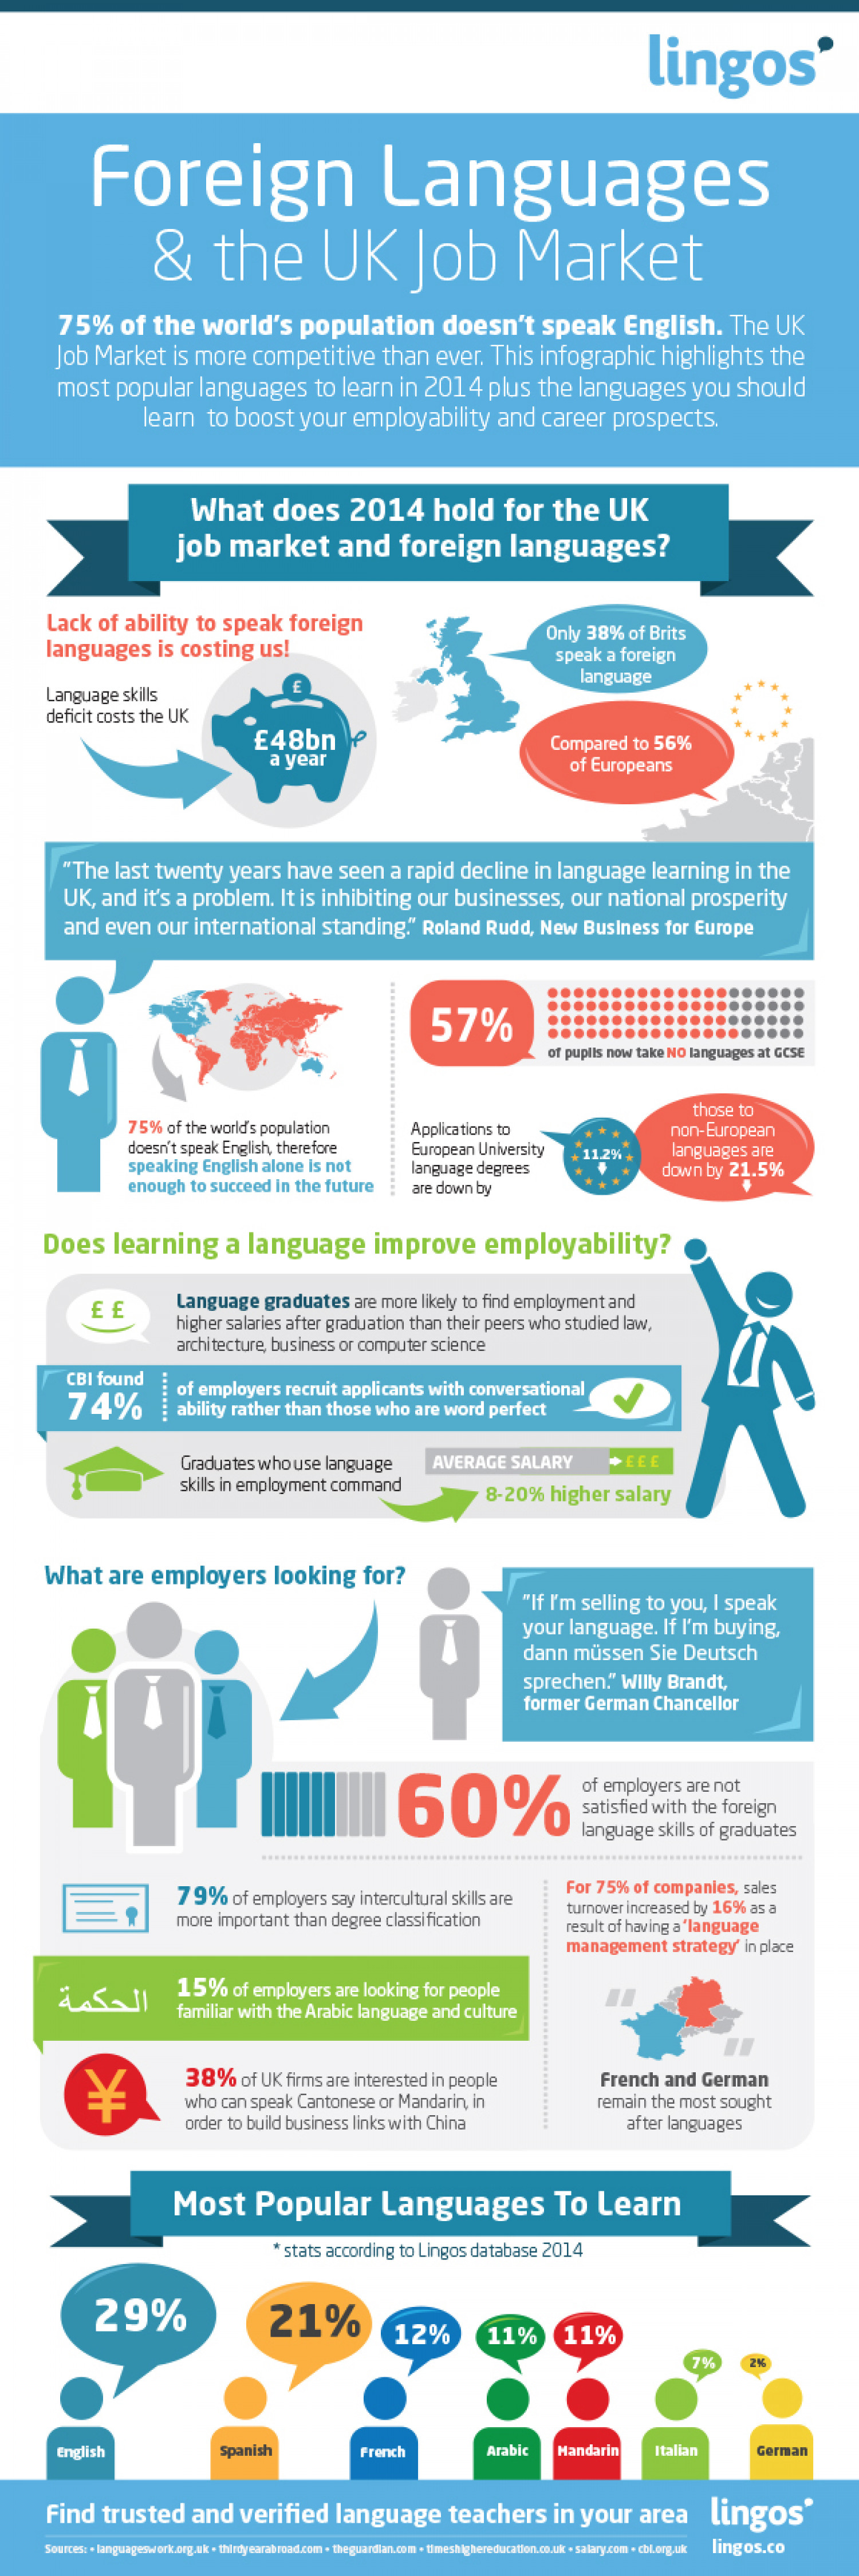 Foreign Languages & the UK Job Market Infographic